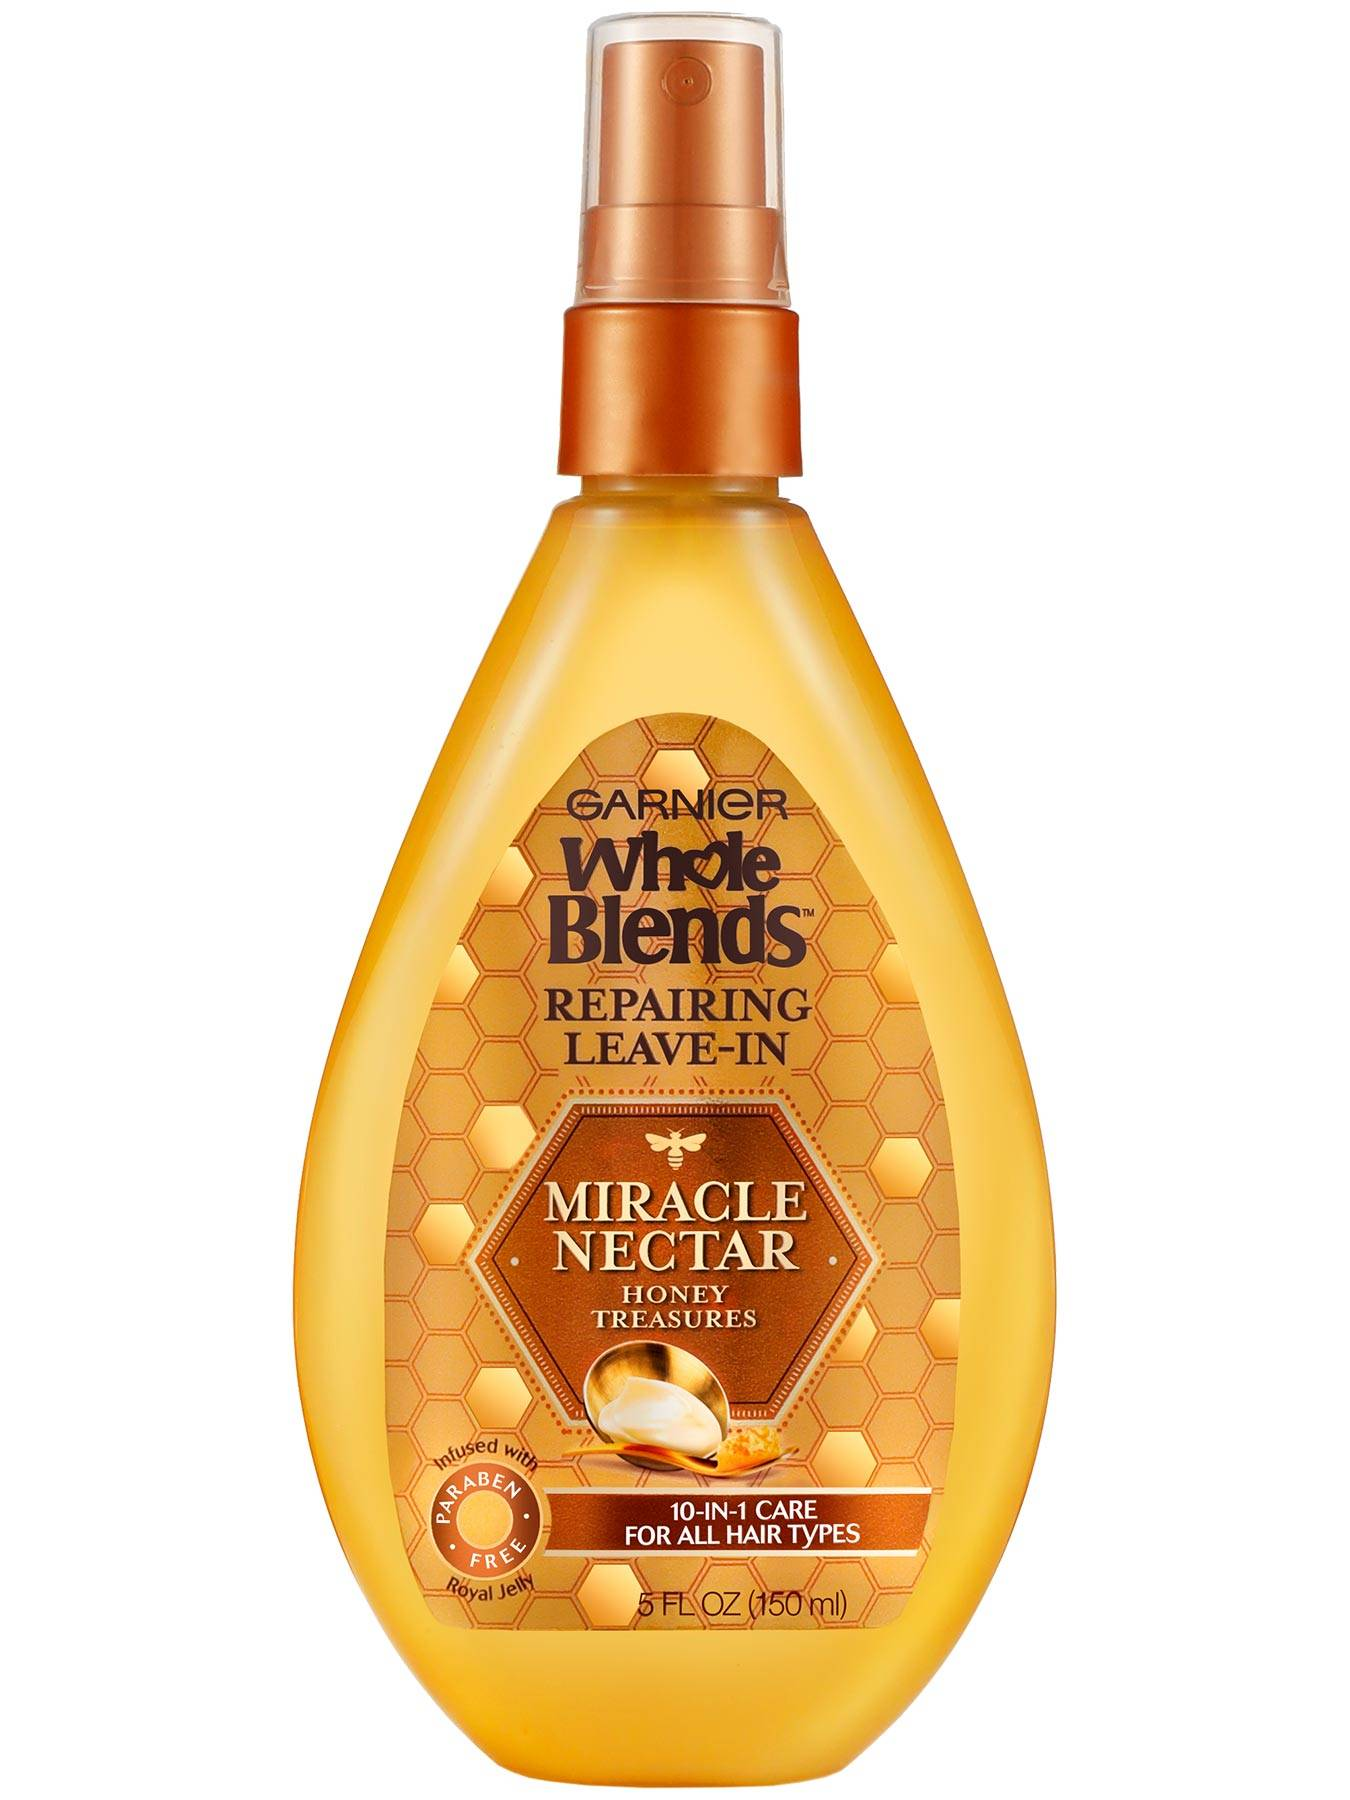 Whole Blends 10 In 1 Miracle Nectar Leave-in Treatment